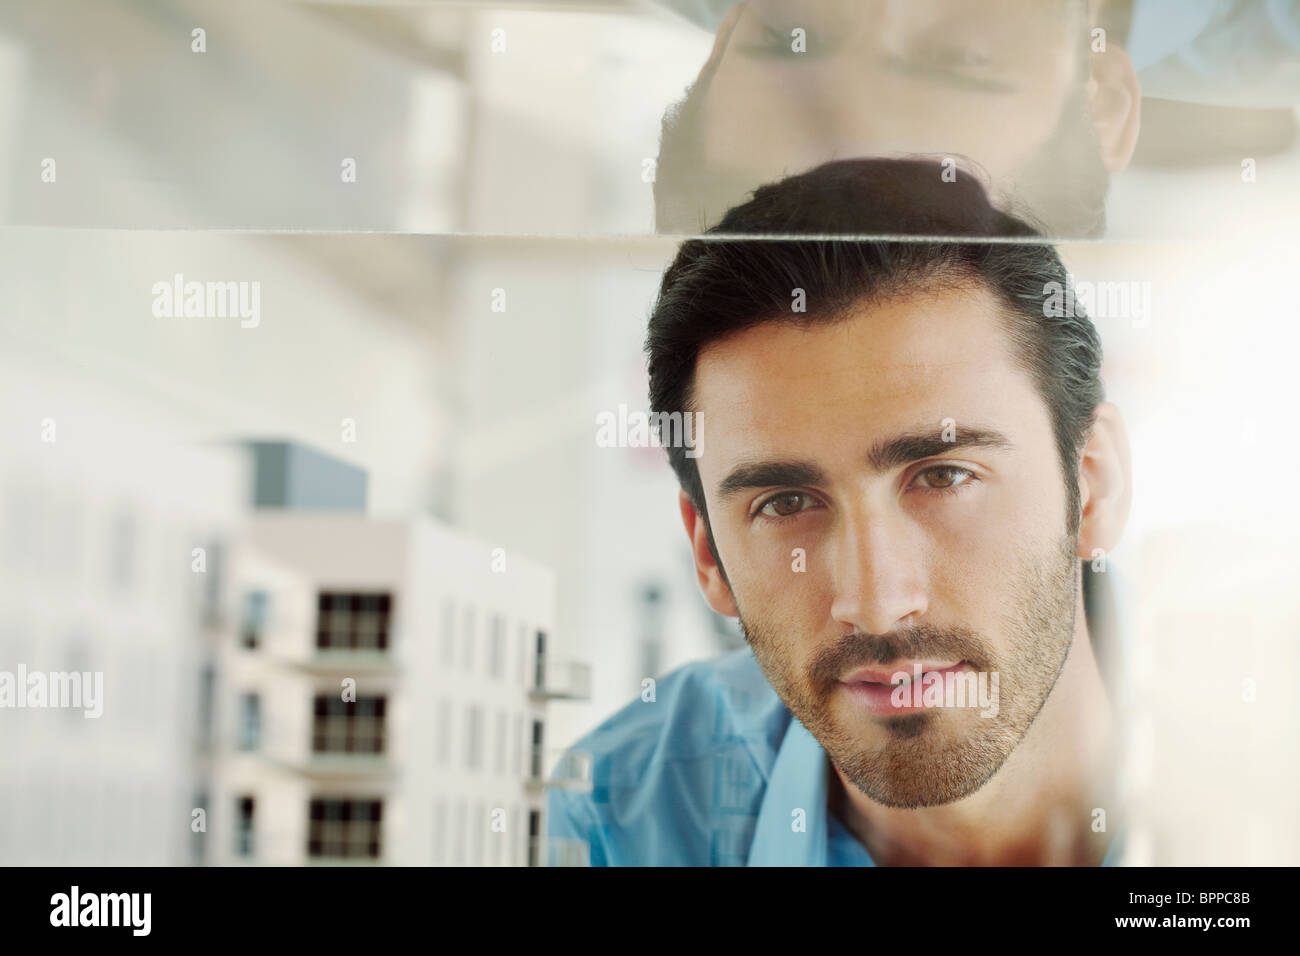 Young man with architectural model - Stock Image